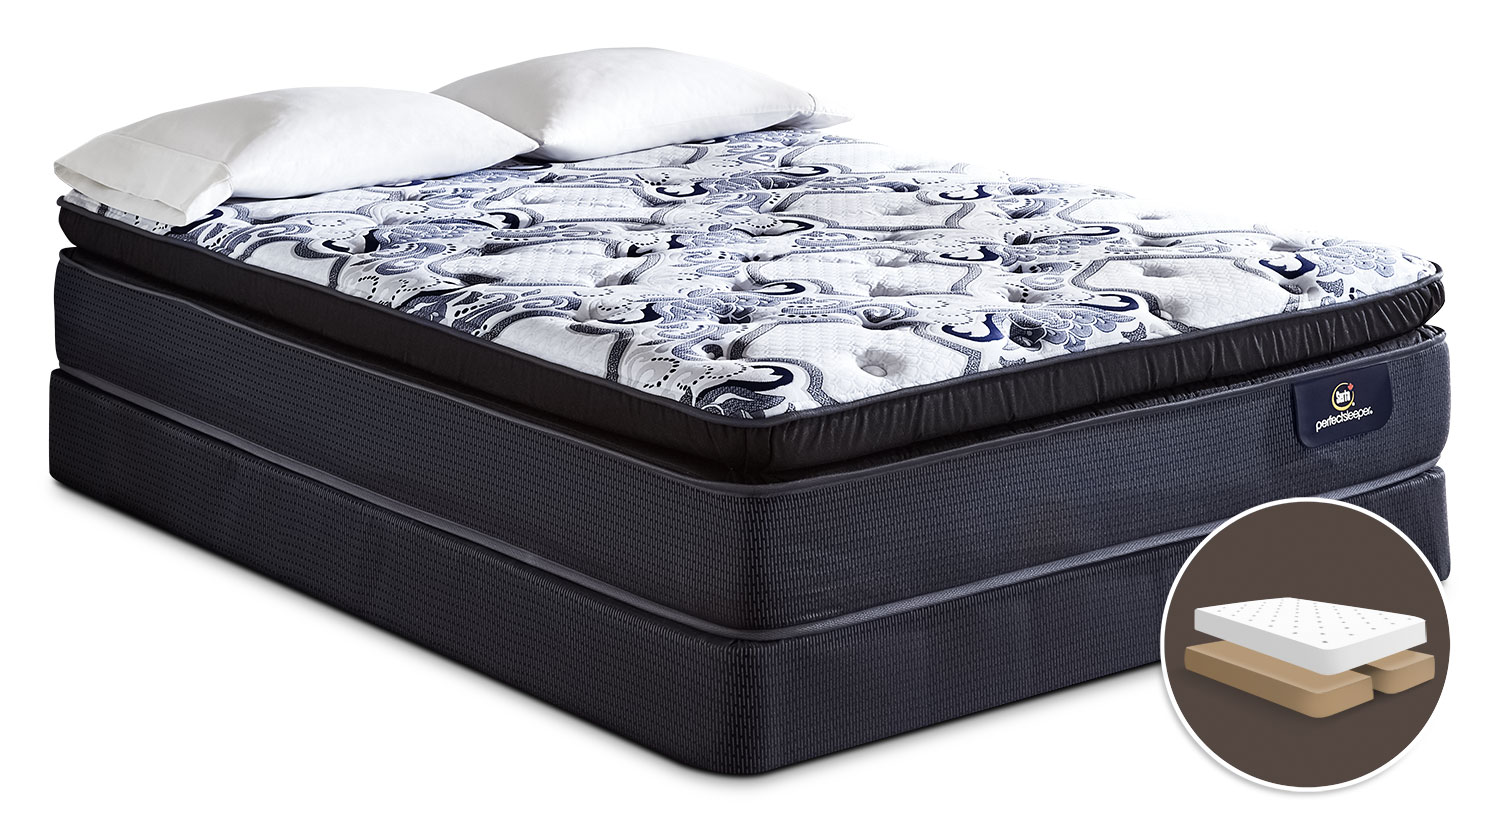 Mattresses and Bedding - Serta Indiana Super Pillow-Top Plush Split Queen Mattress Set